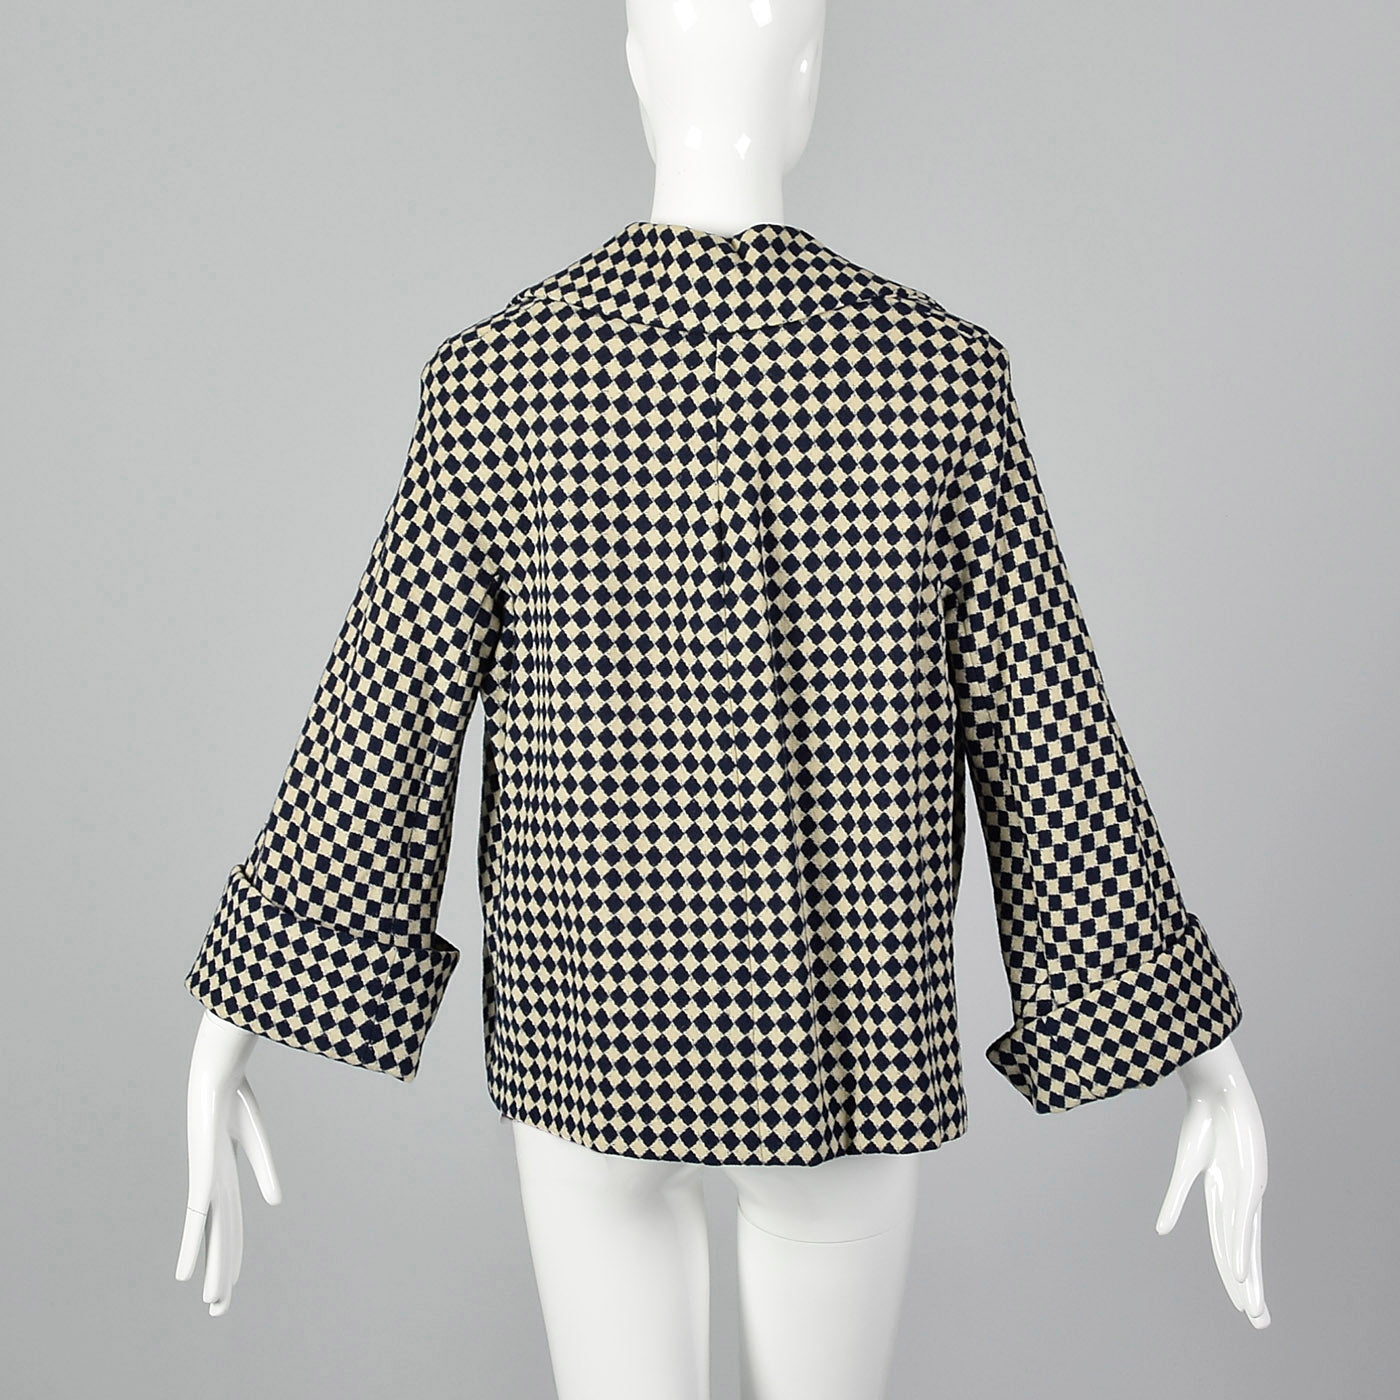 1950s Navy Blue and White Check Jacket